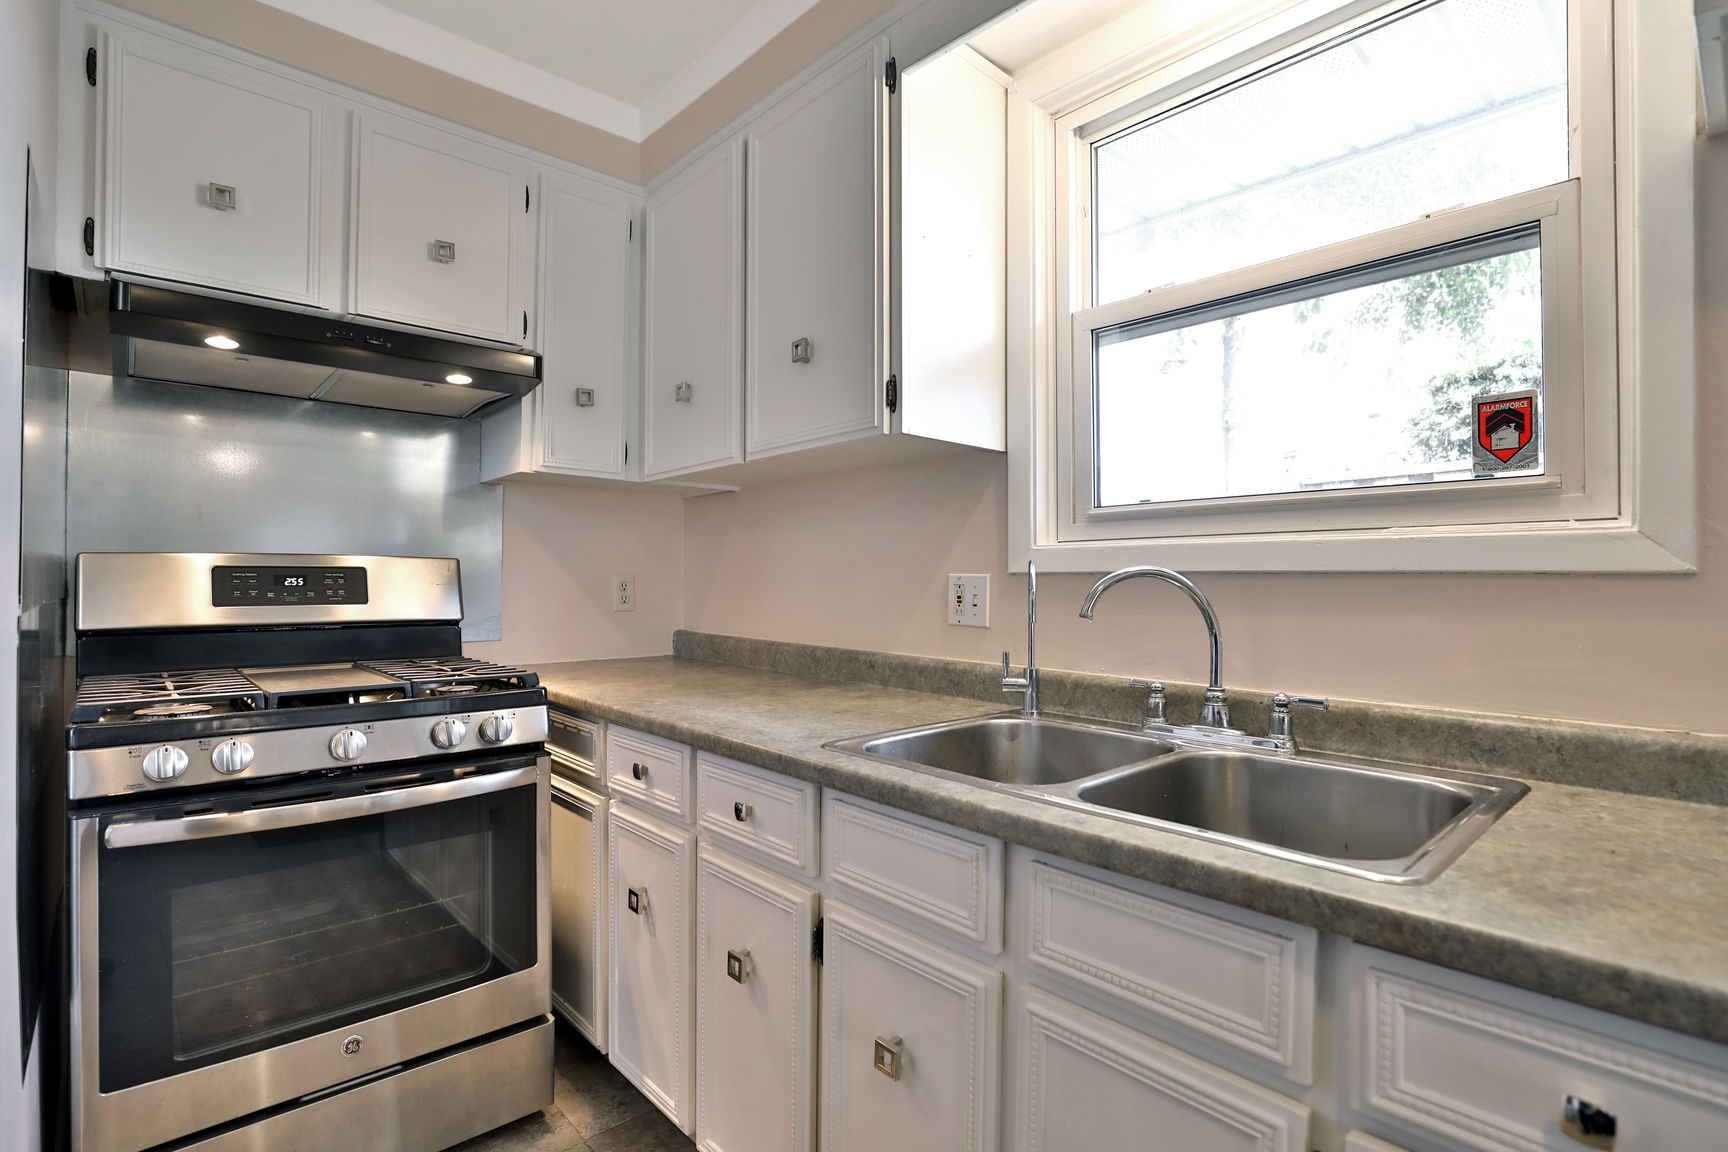 10 - Recently SOLD in Rosedale